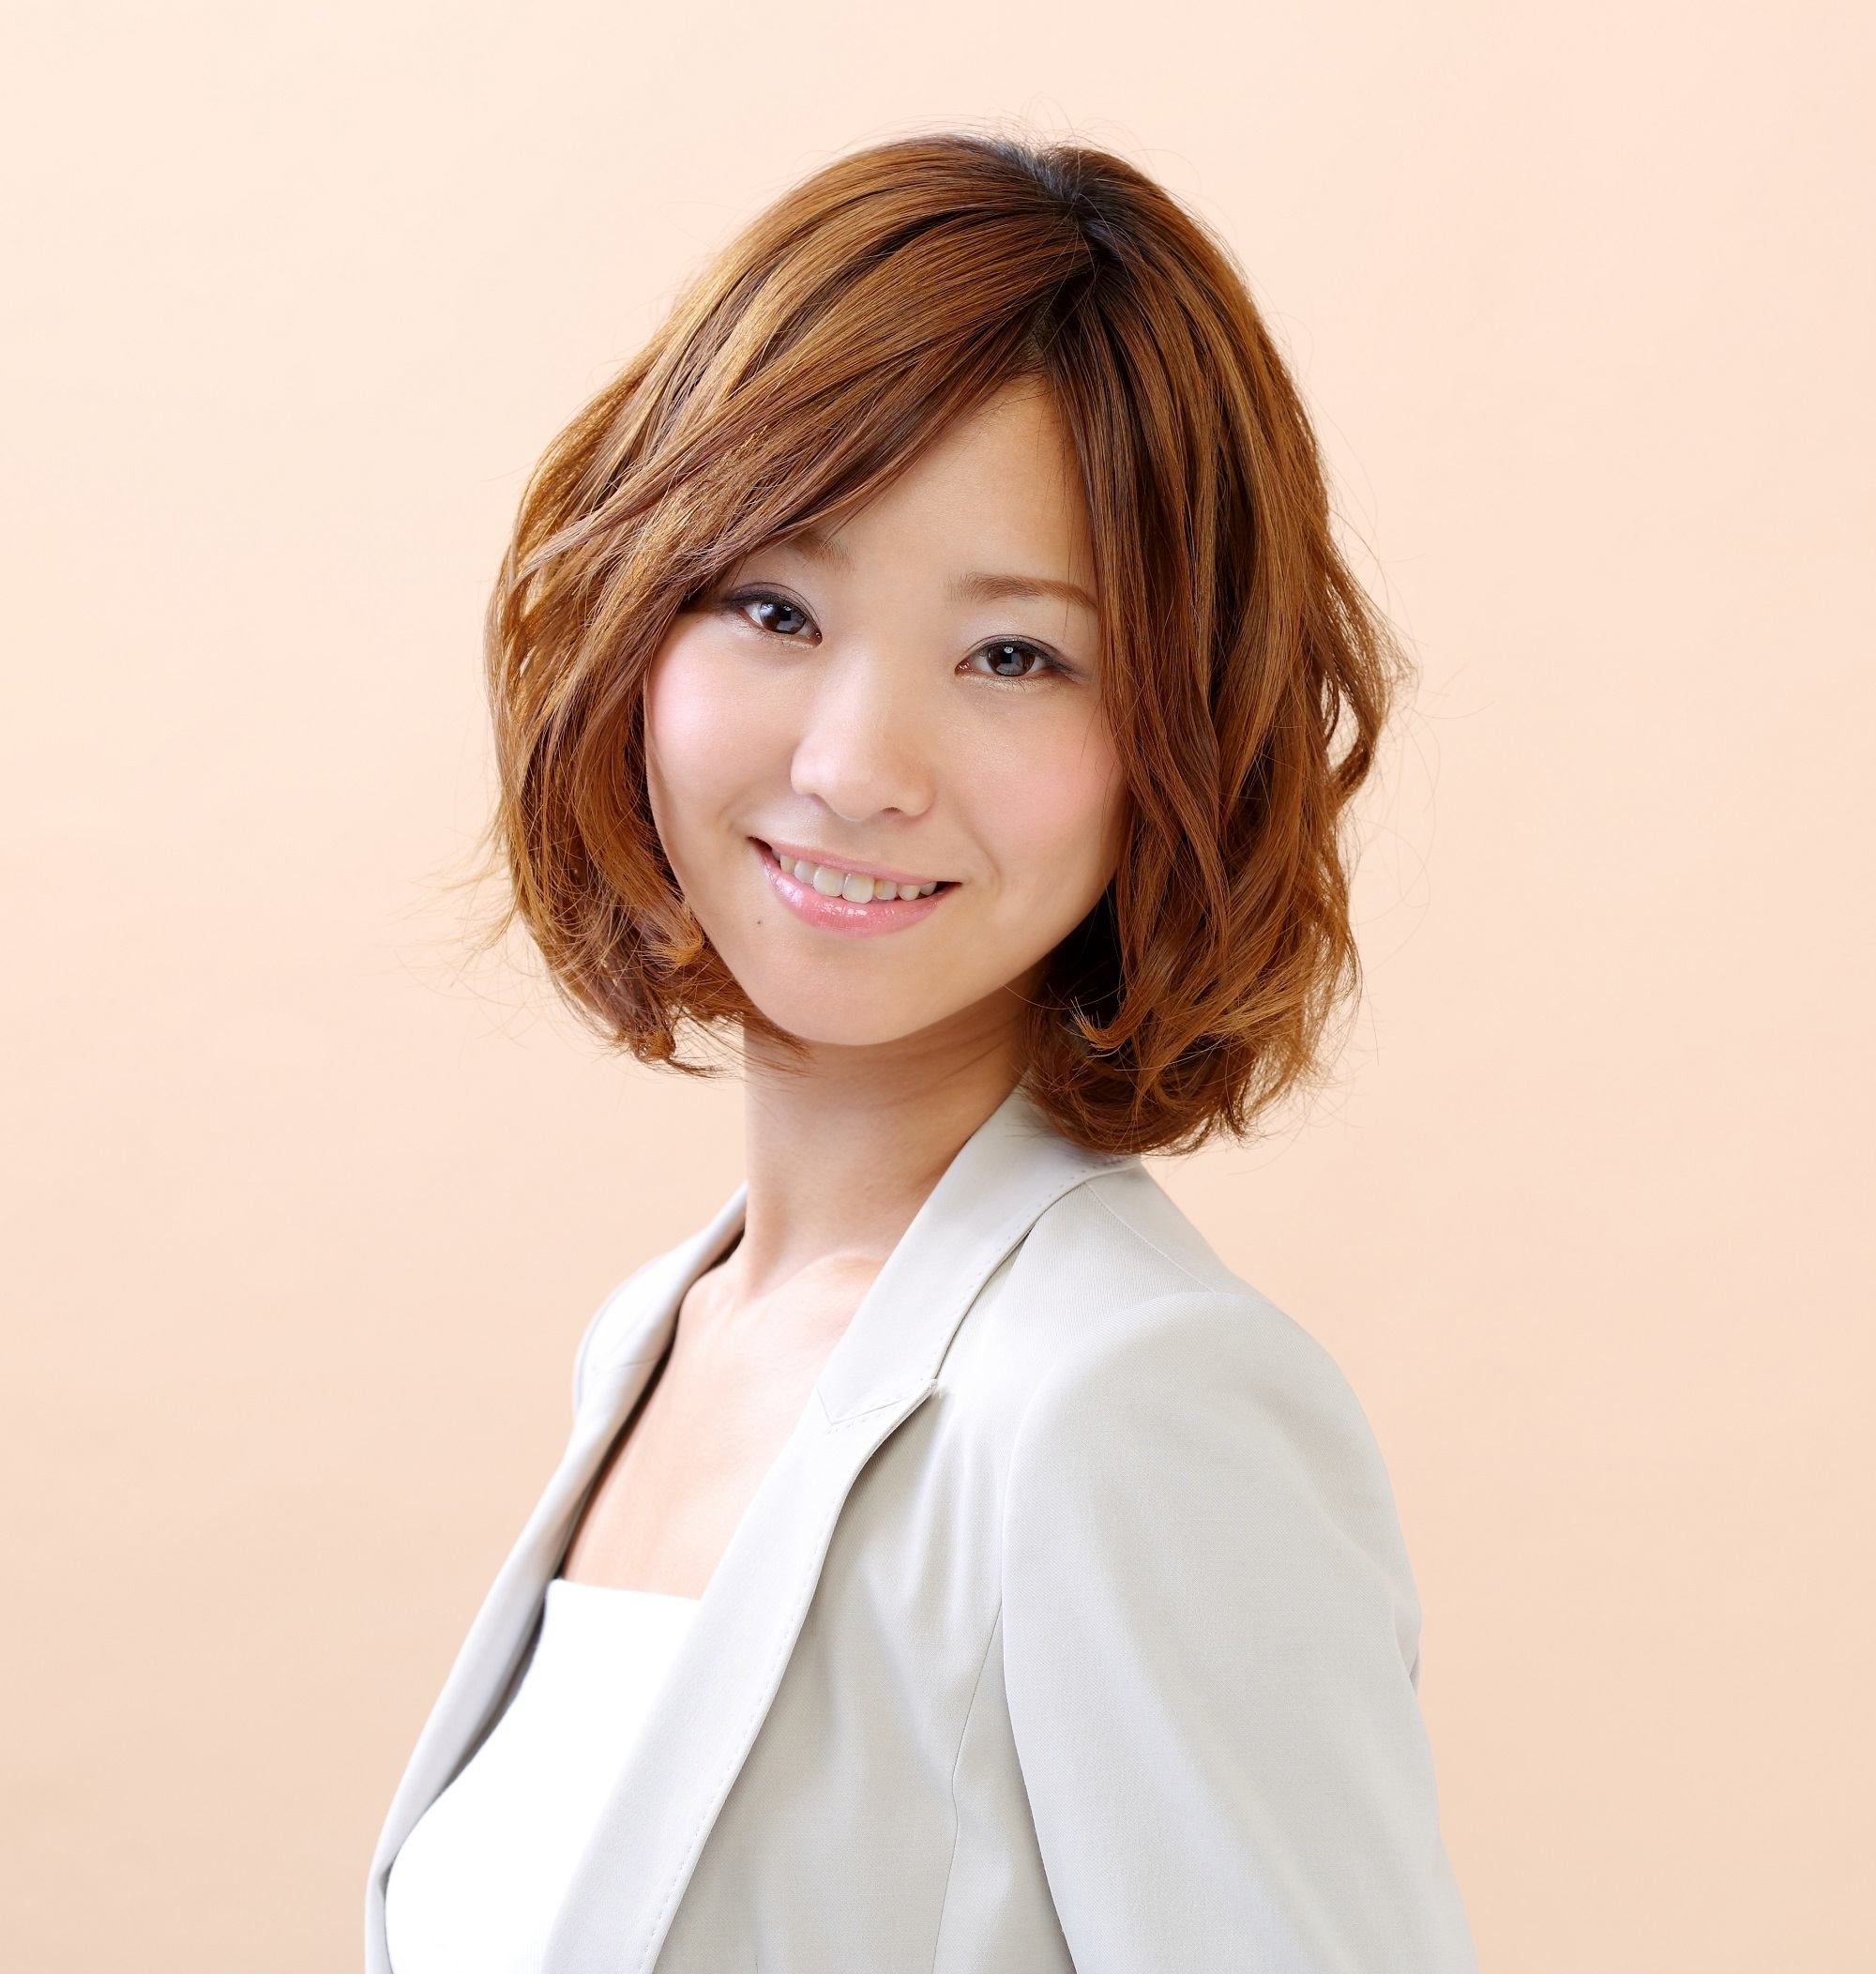 Layered haircuts with bangs: Closeup shot of an Asian woman with short wavy brown hair wearing a gray blazer